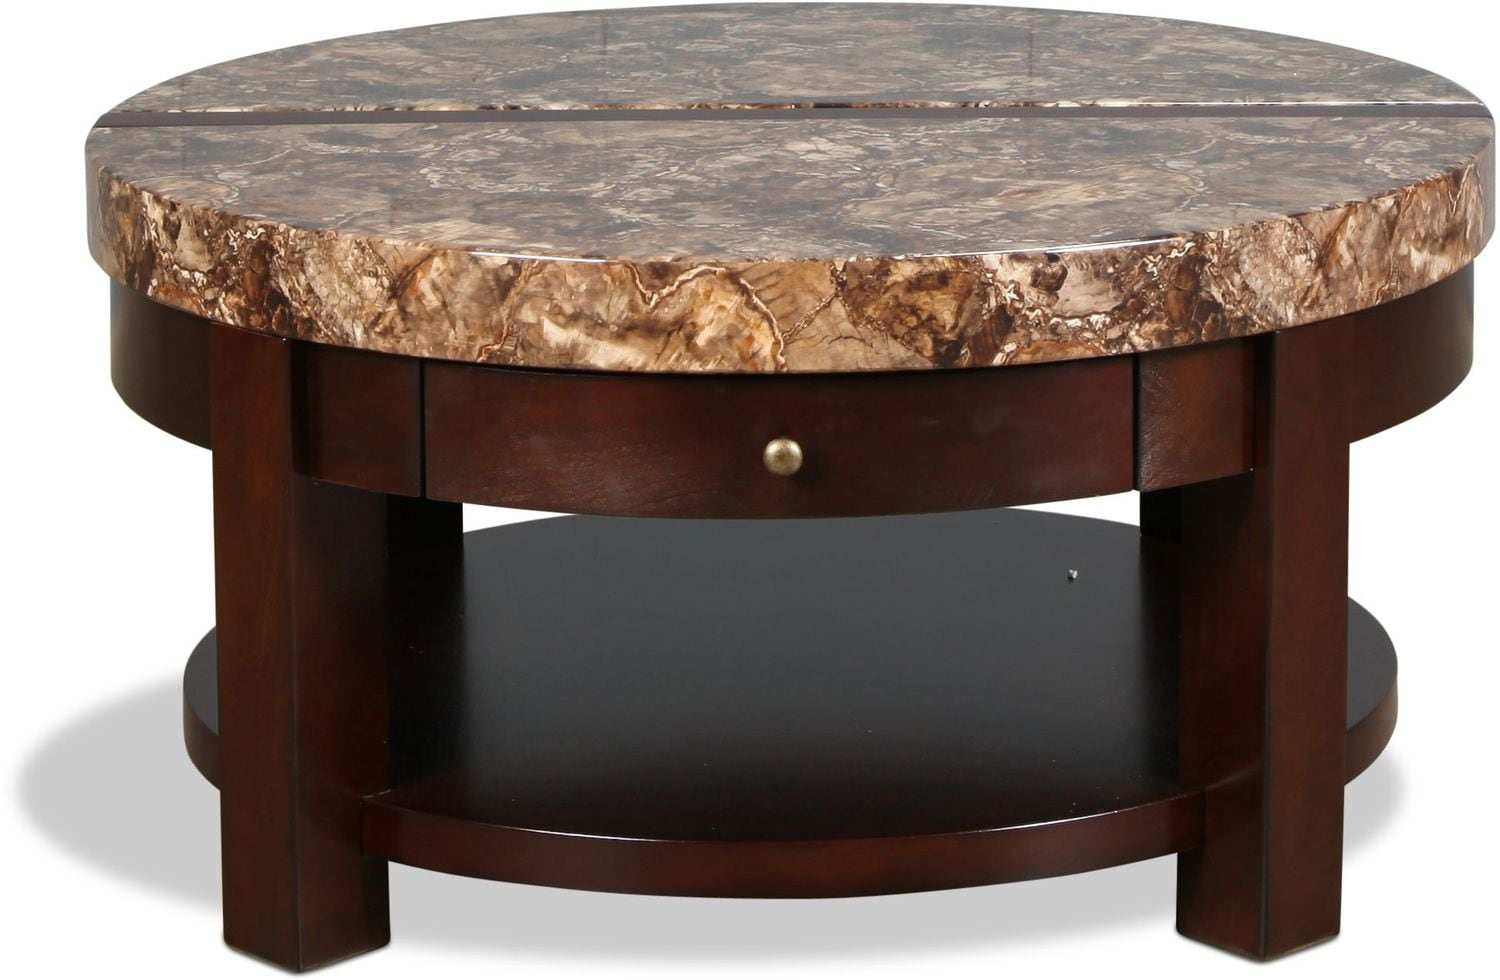 Accent and Occasional Furniture - Cabo Lift-Top Coffee Table - Brown Cherry with Faux Marble